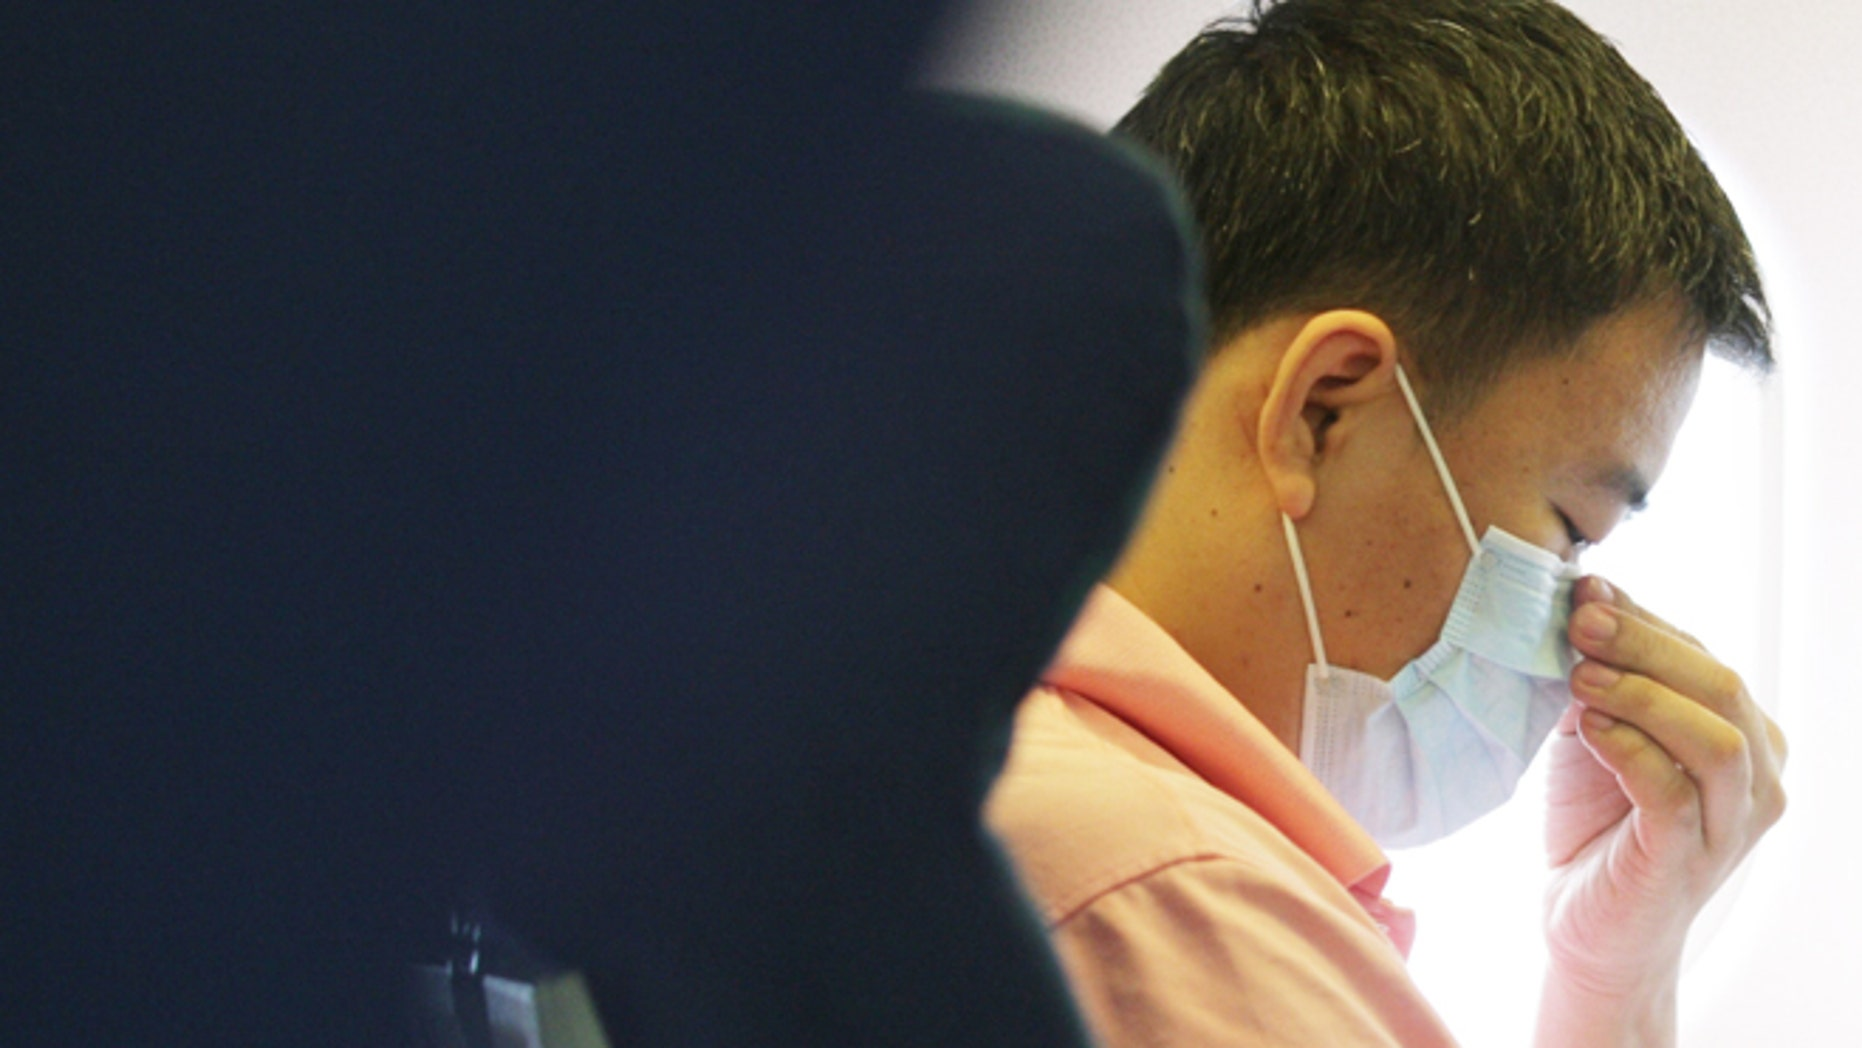 There's a reason you might feel after traveling at 30,000 feet.